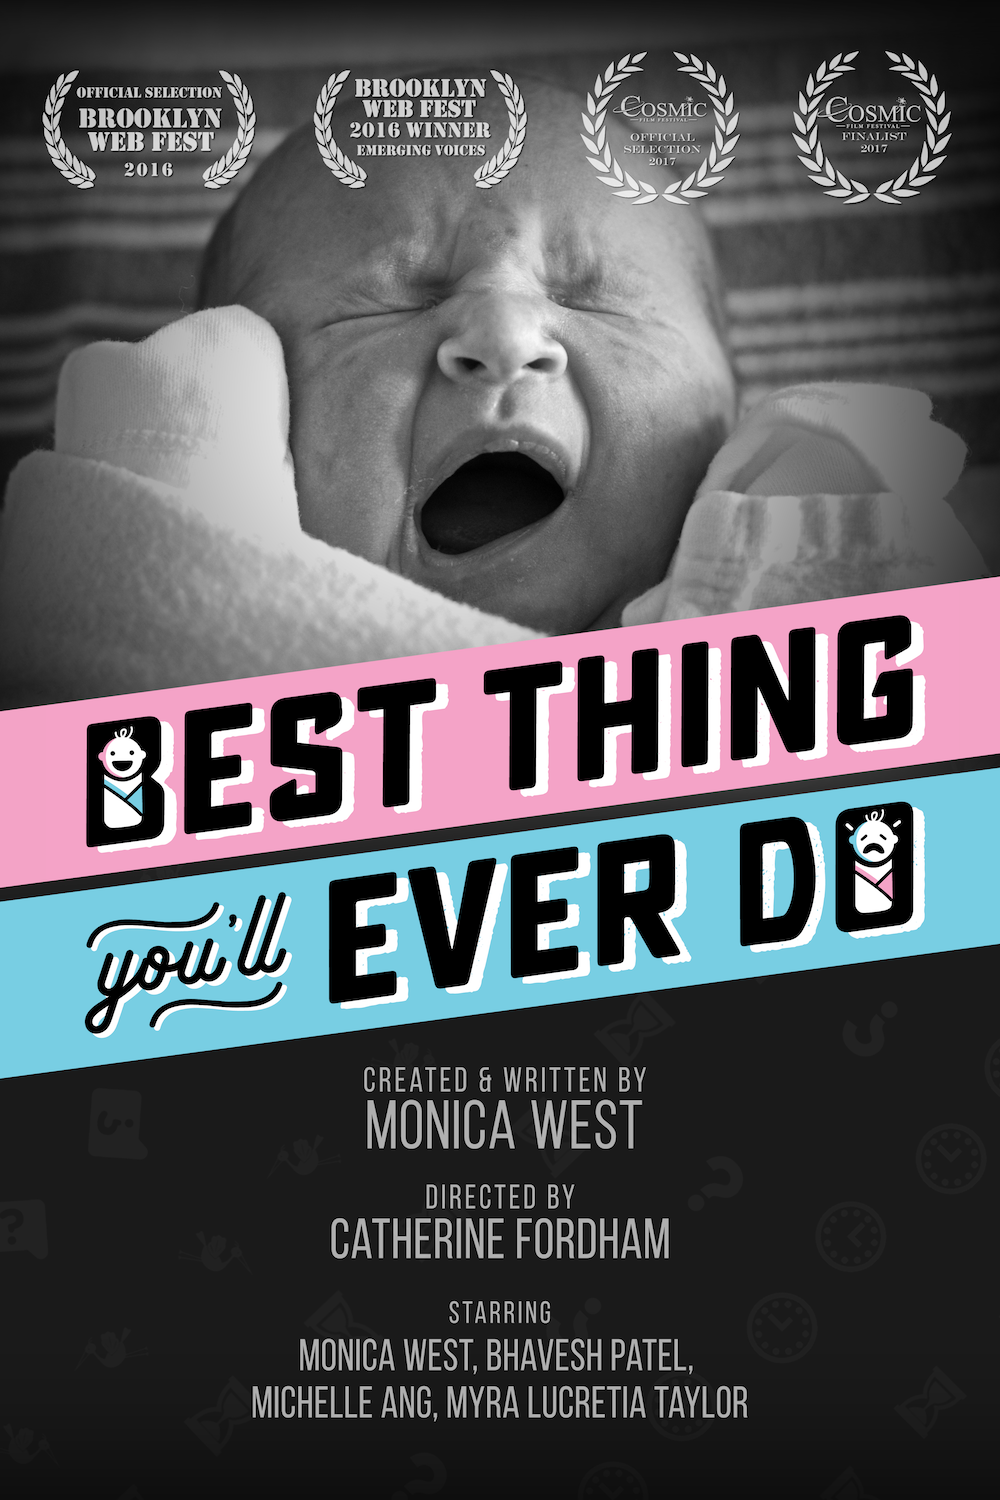 A Silicon Valley entrepreneur comes face-to-face with the baby question as she encounters strangers' and loved ones' advice about having a baby (or not). Winner of the New Hollywood Emerging Voices Award 2016